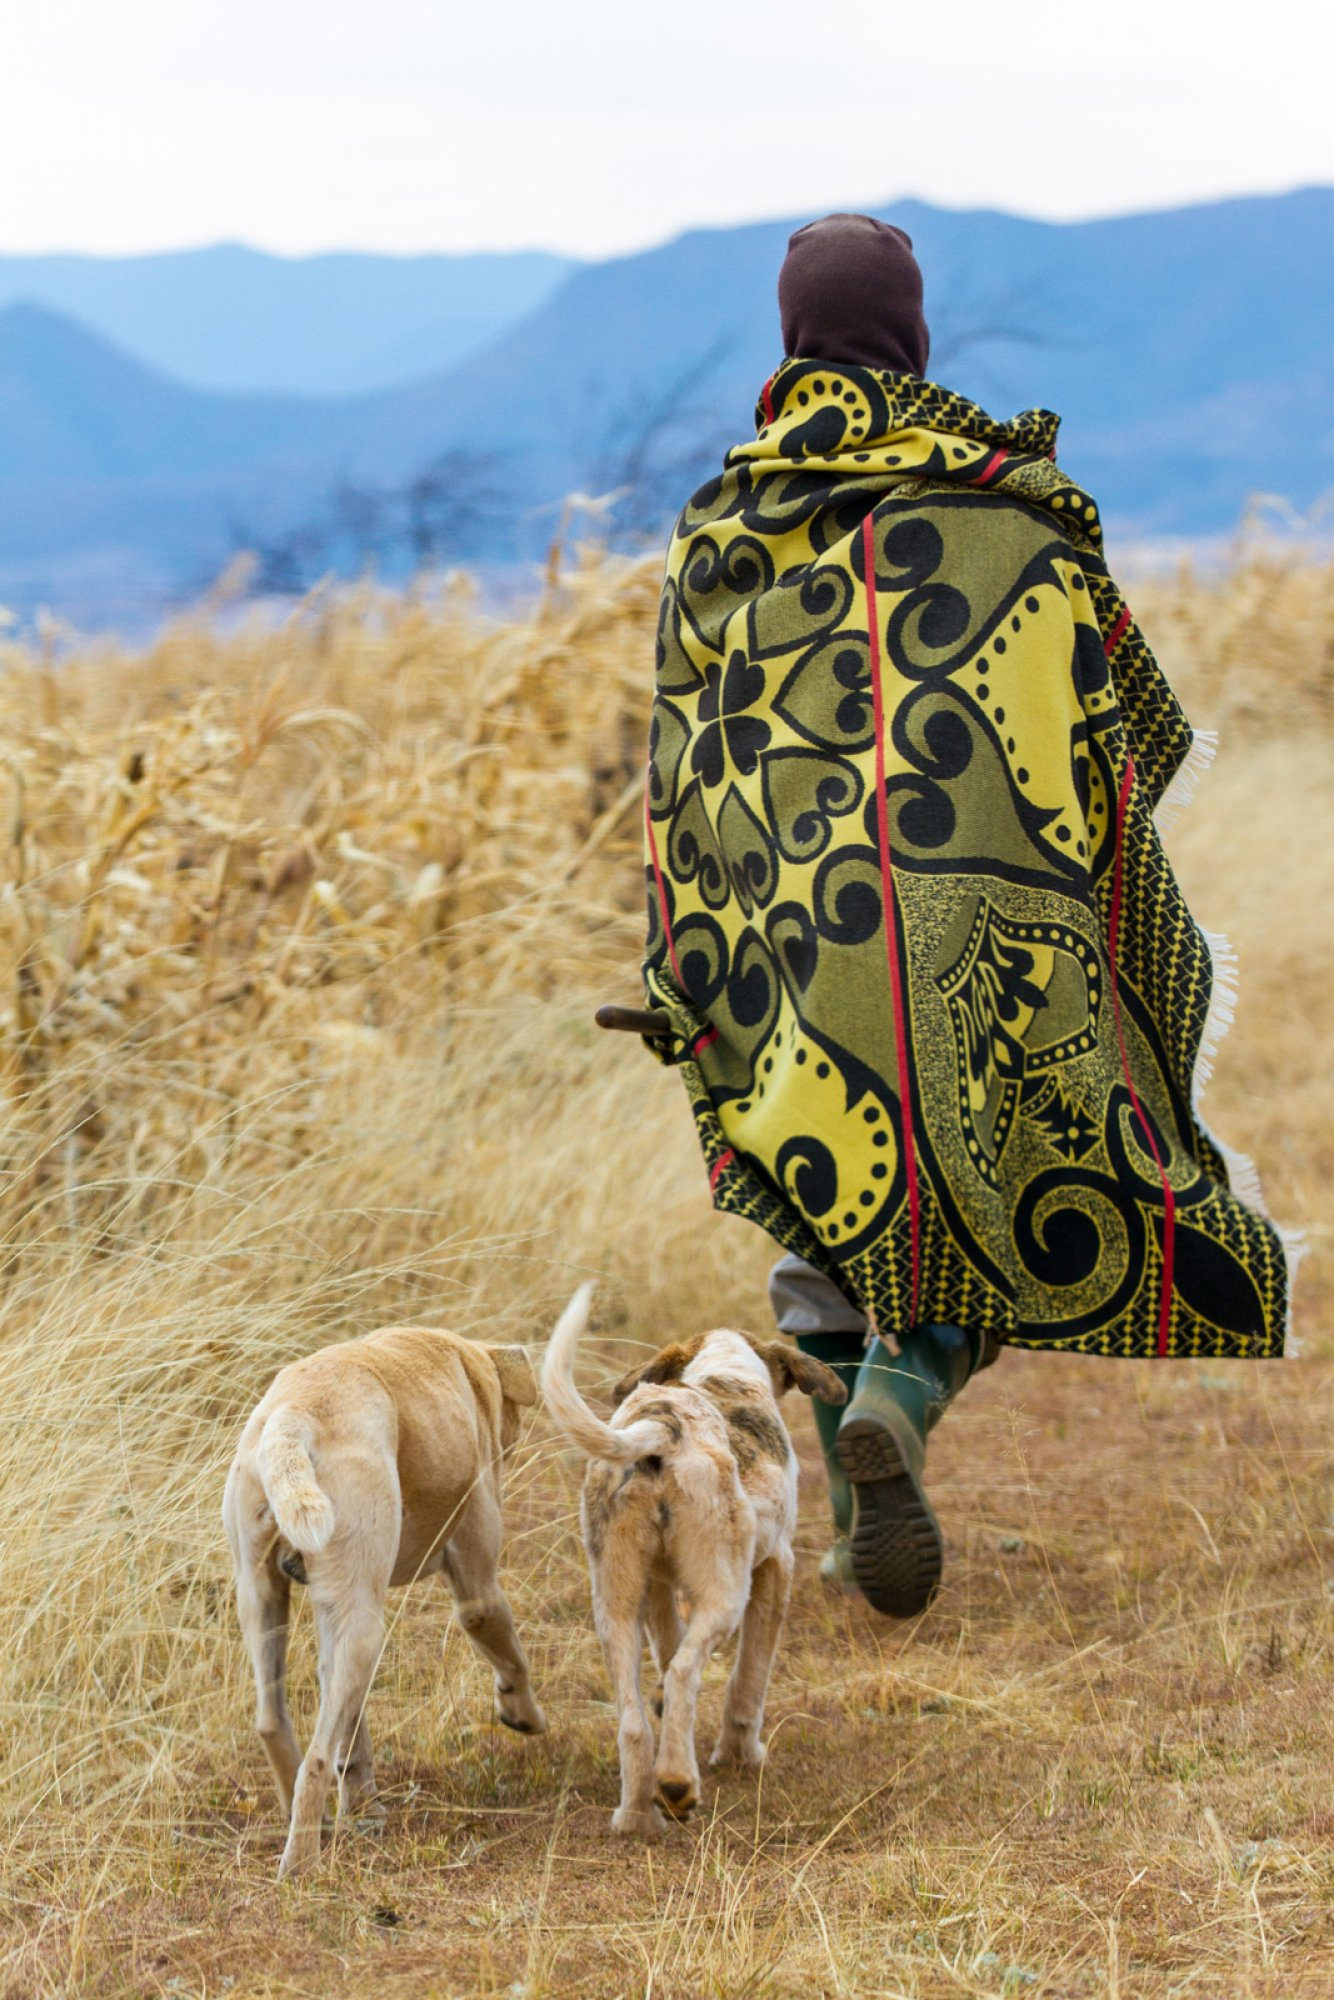 https://bubo.sk/uploads/galleries/7526/lesotho-unidentified-basotho-man-with-2-dogs-wearing-traditional-blanket-lesotho.jpg